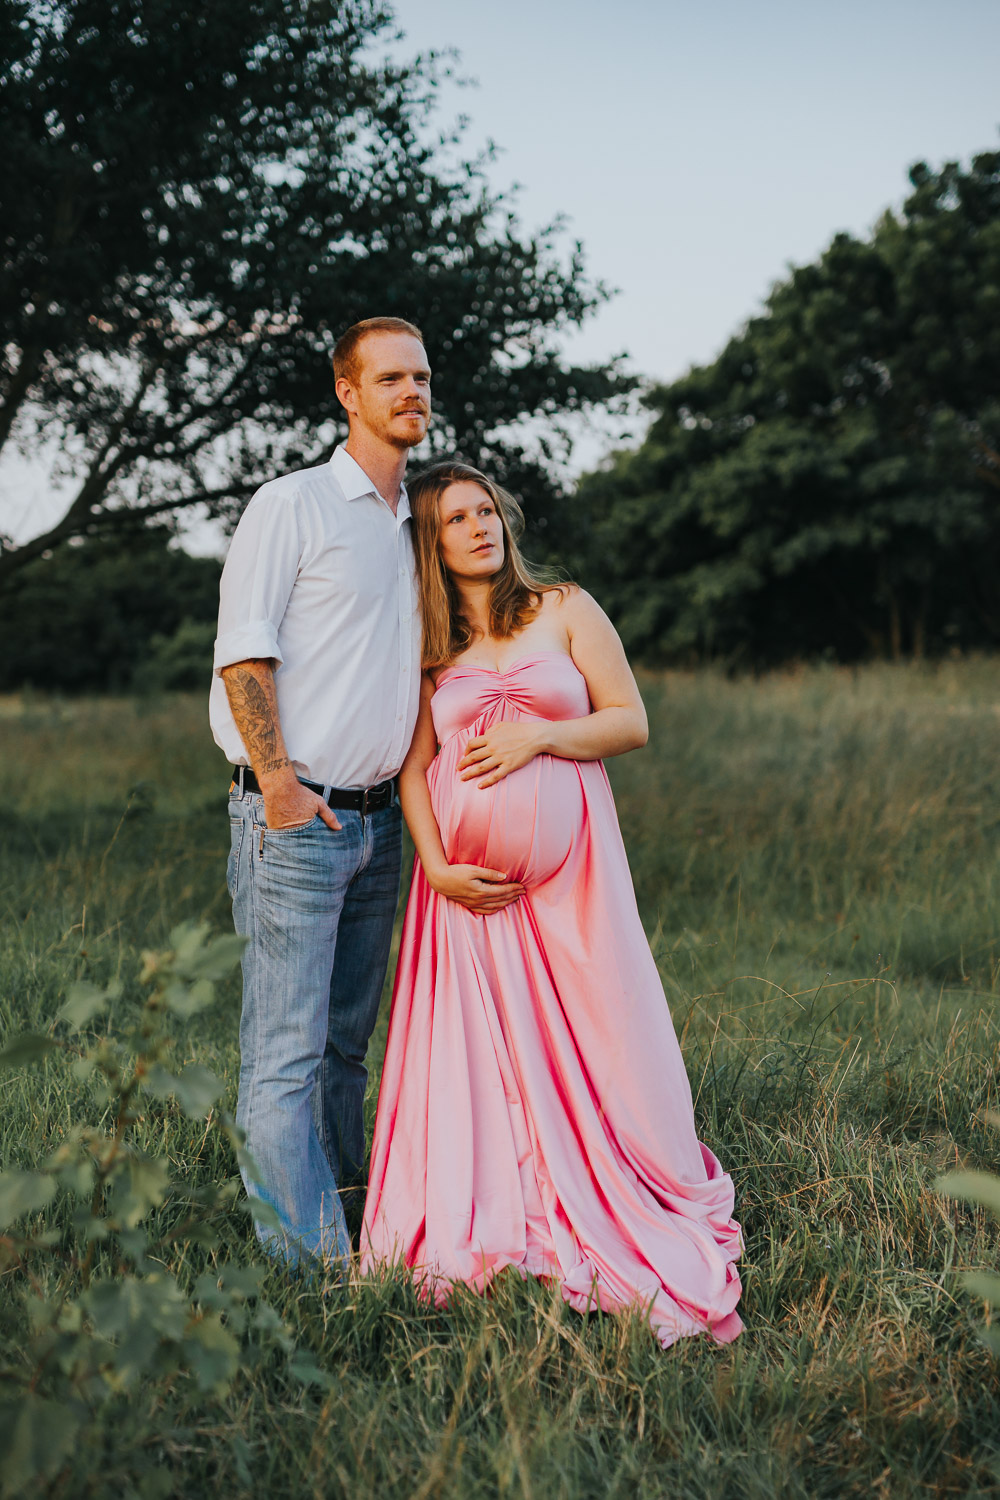 Maternity photoshoot-26.jpg